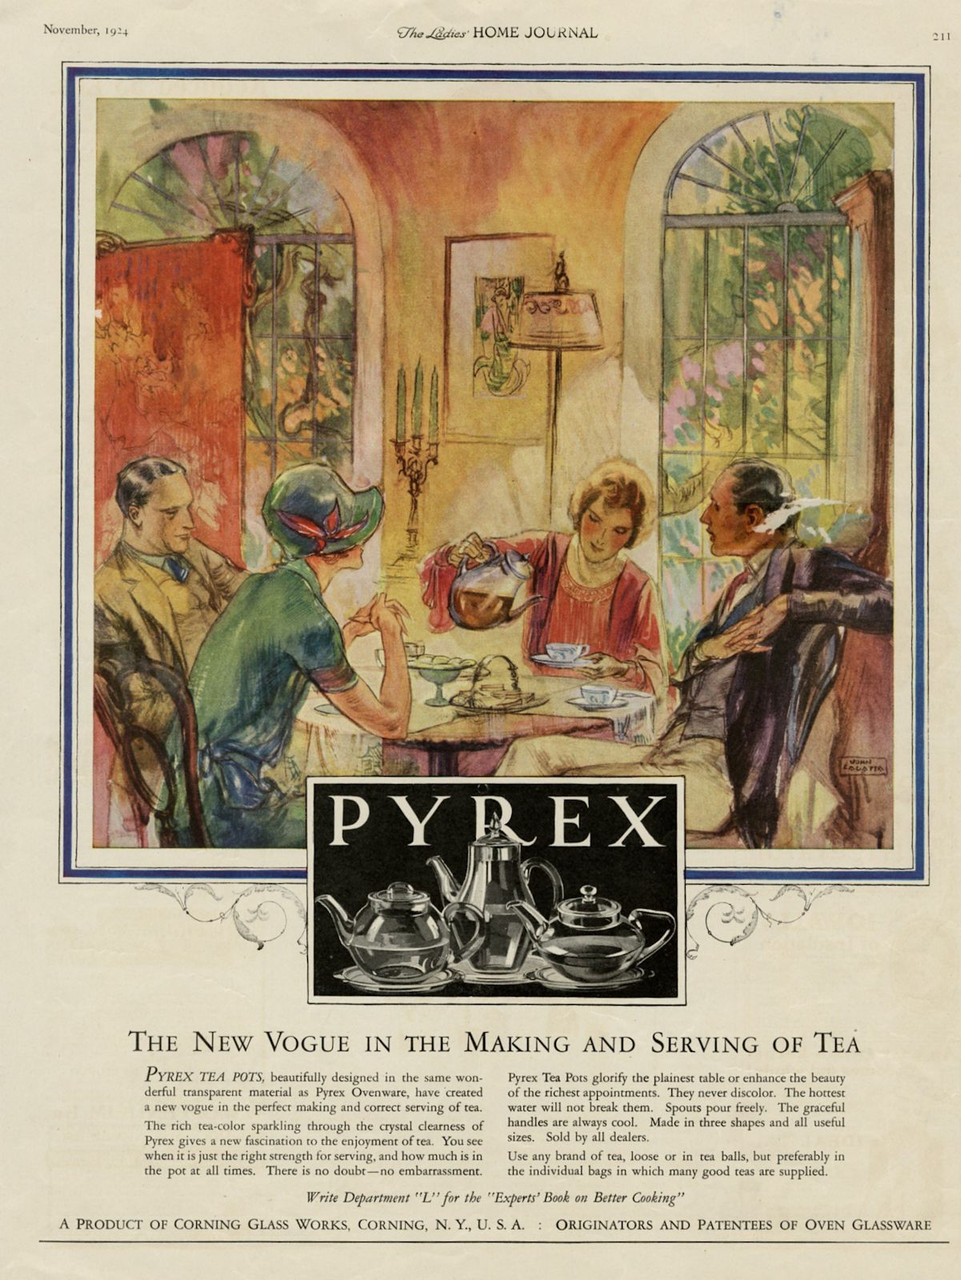 """Vintage Pyrex Tea Pot - """"The New Vogue in the Making and Serving of Tea"""" [advertisement], Corning Glass Works, Ladies' Home Journal, November 1924, pp. 211"""